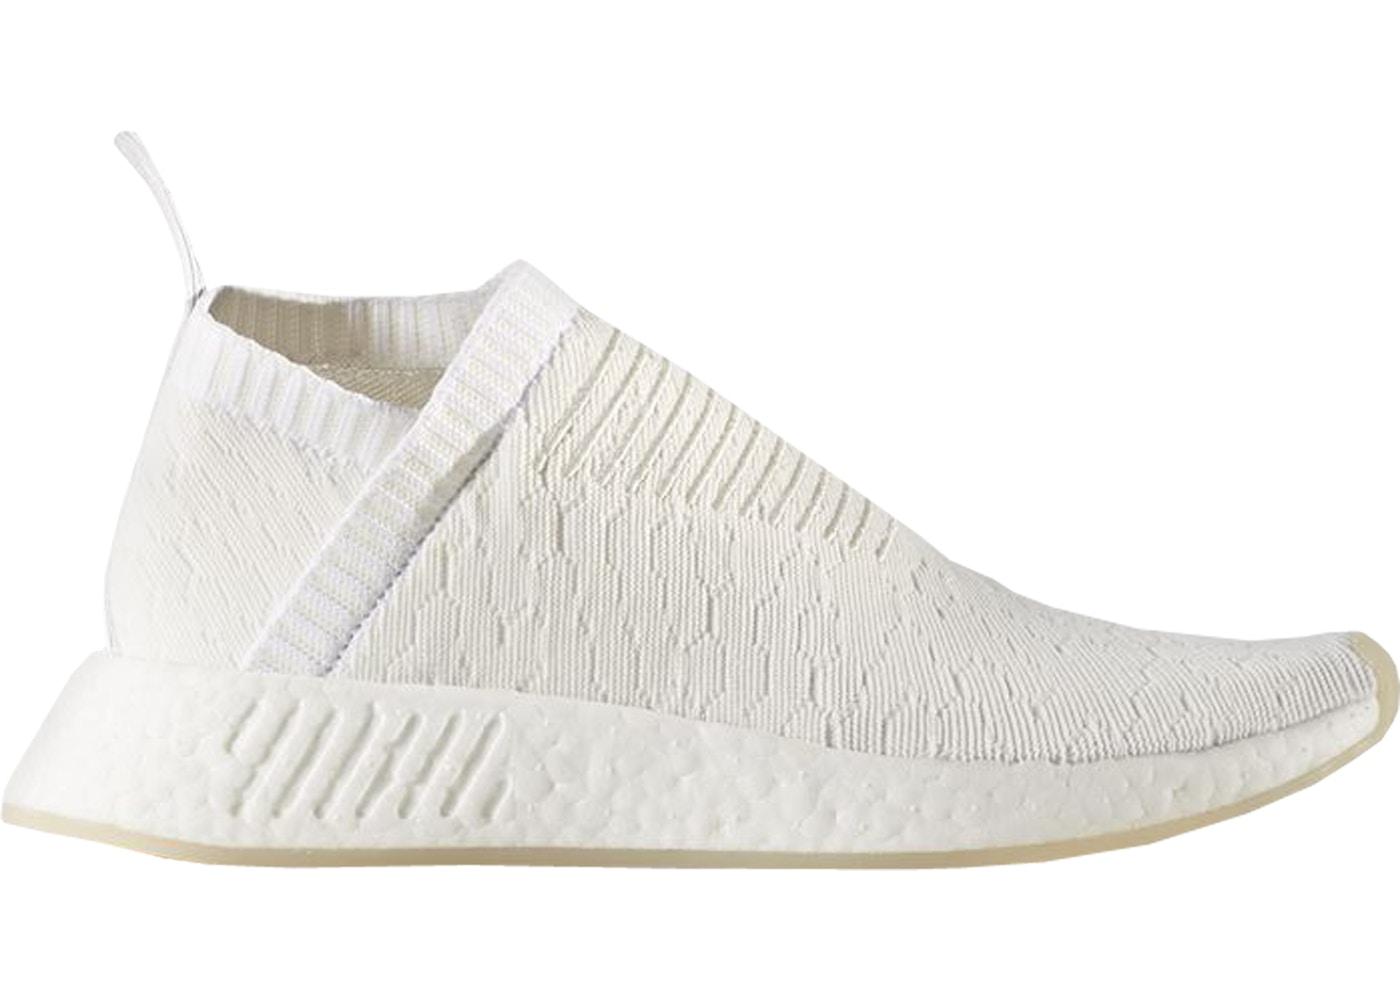 eb5ff9be adidas NMD CS2 Triple White (W) - BY3018